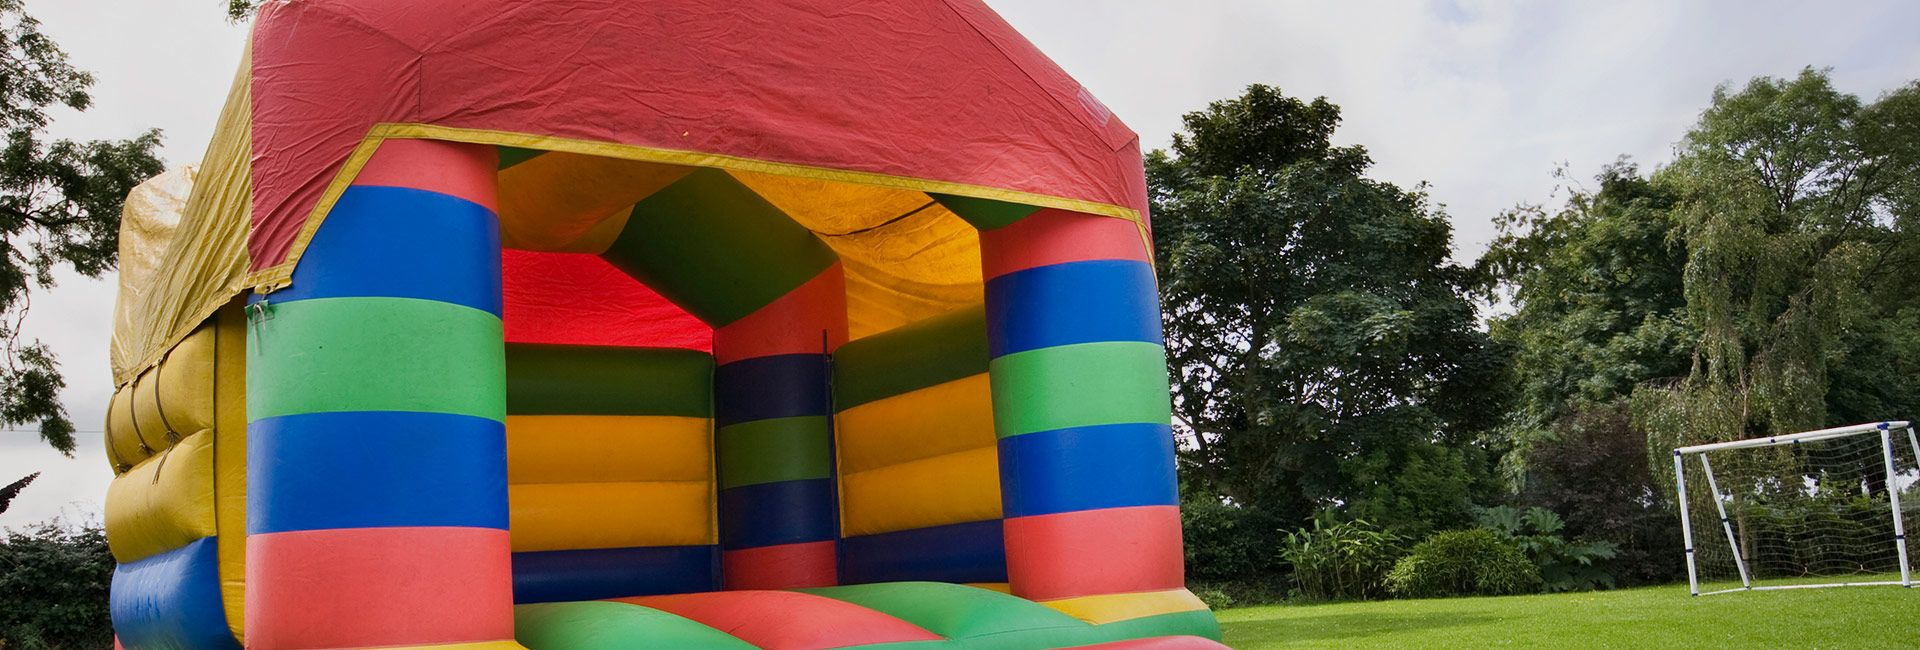 bouncy castles family fun days